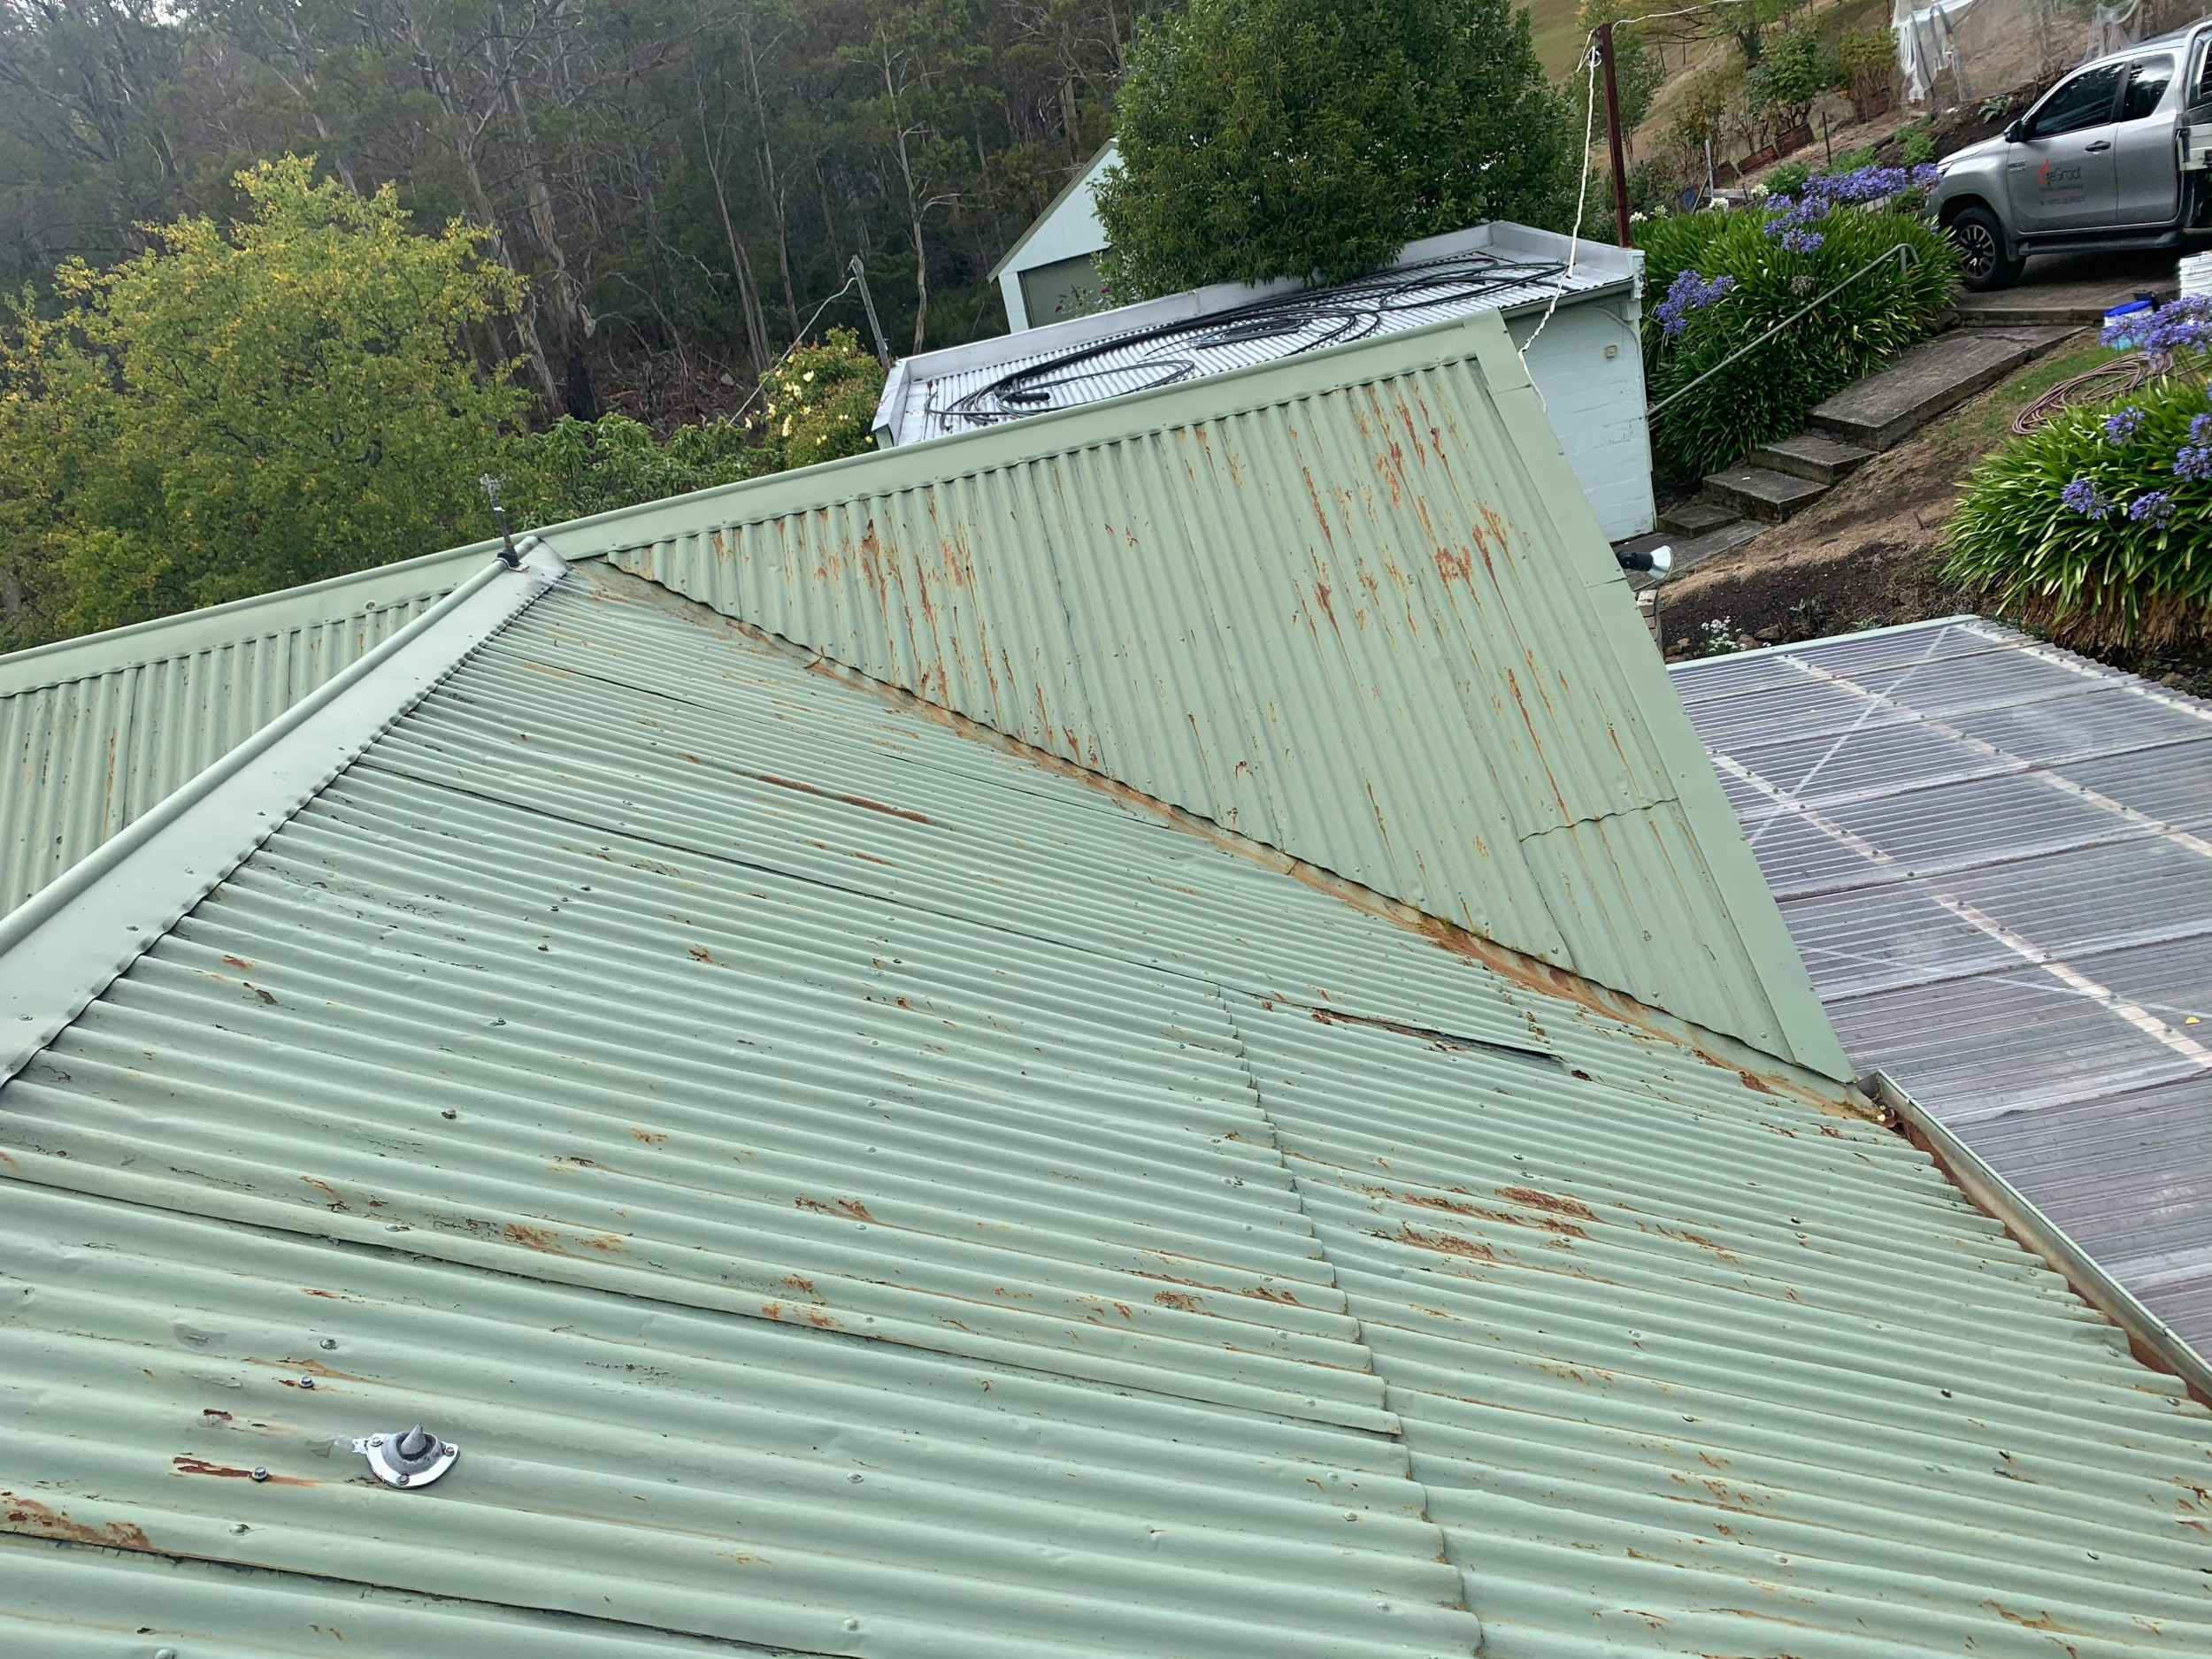 Roof Inspections & Re-screwing hero image